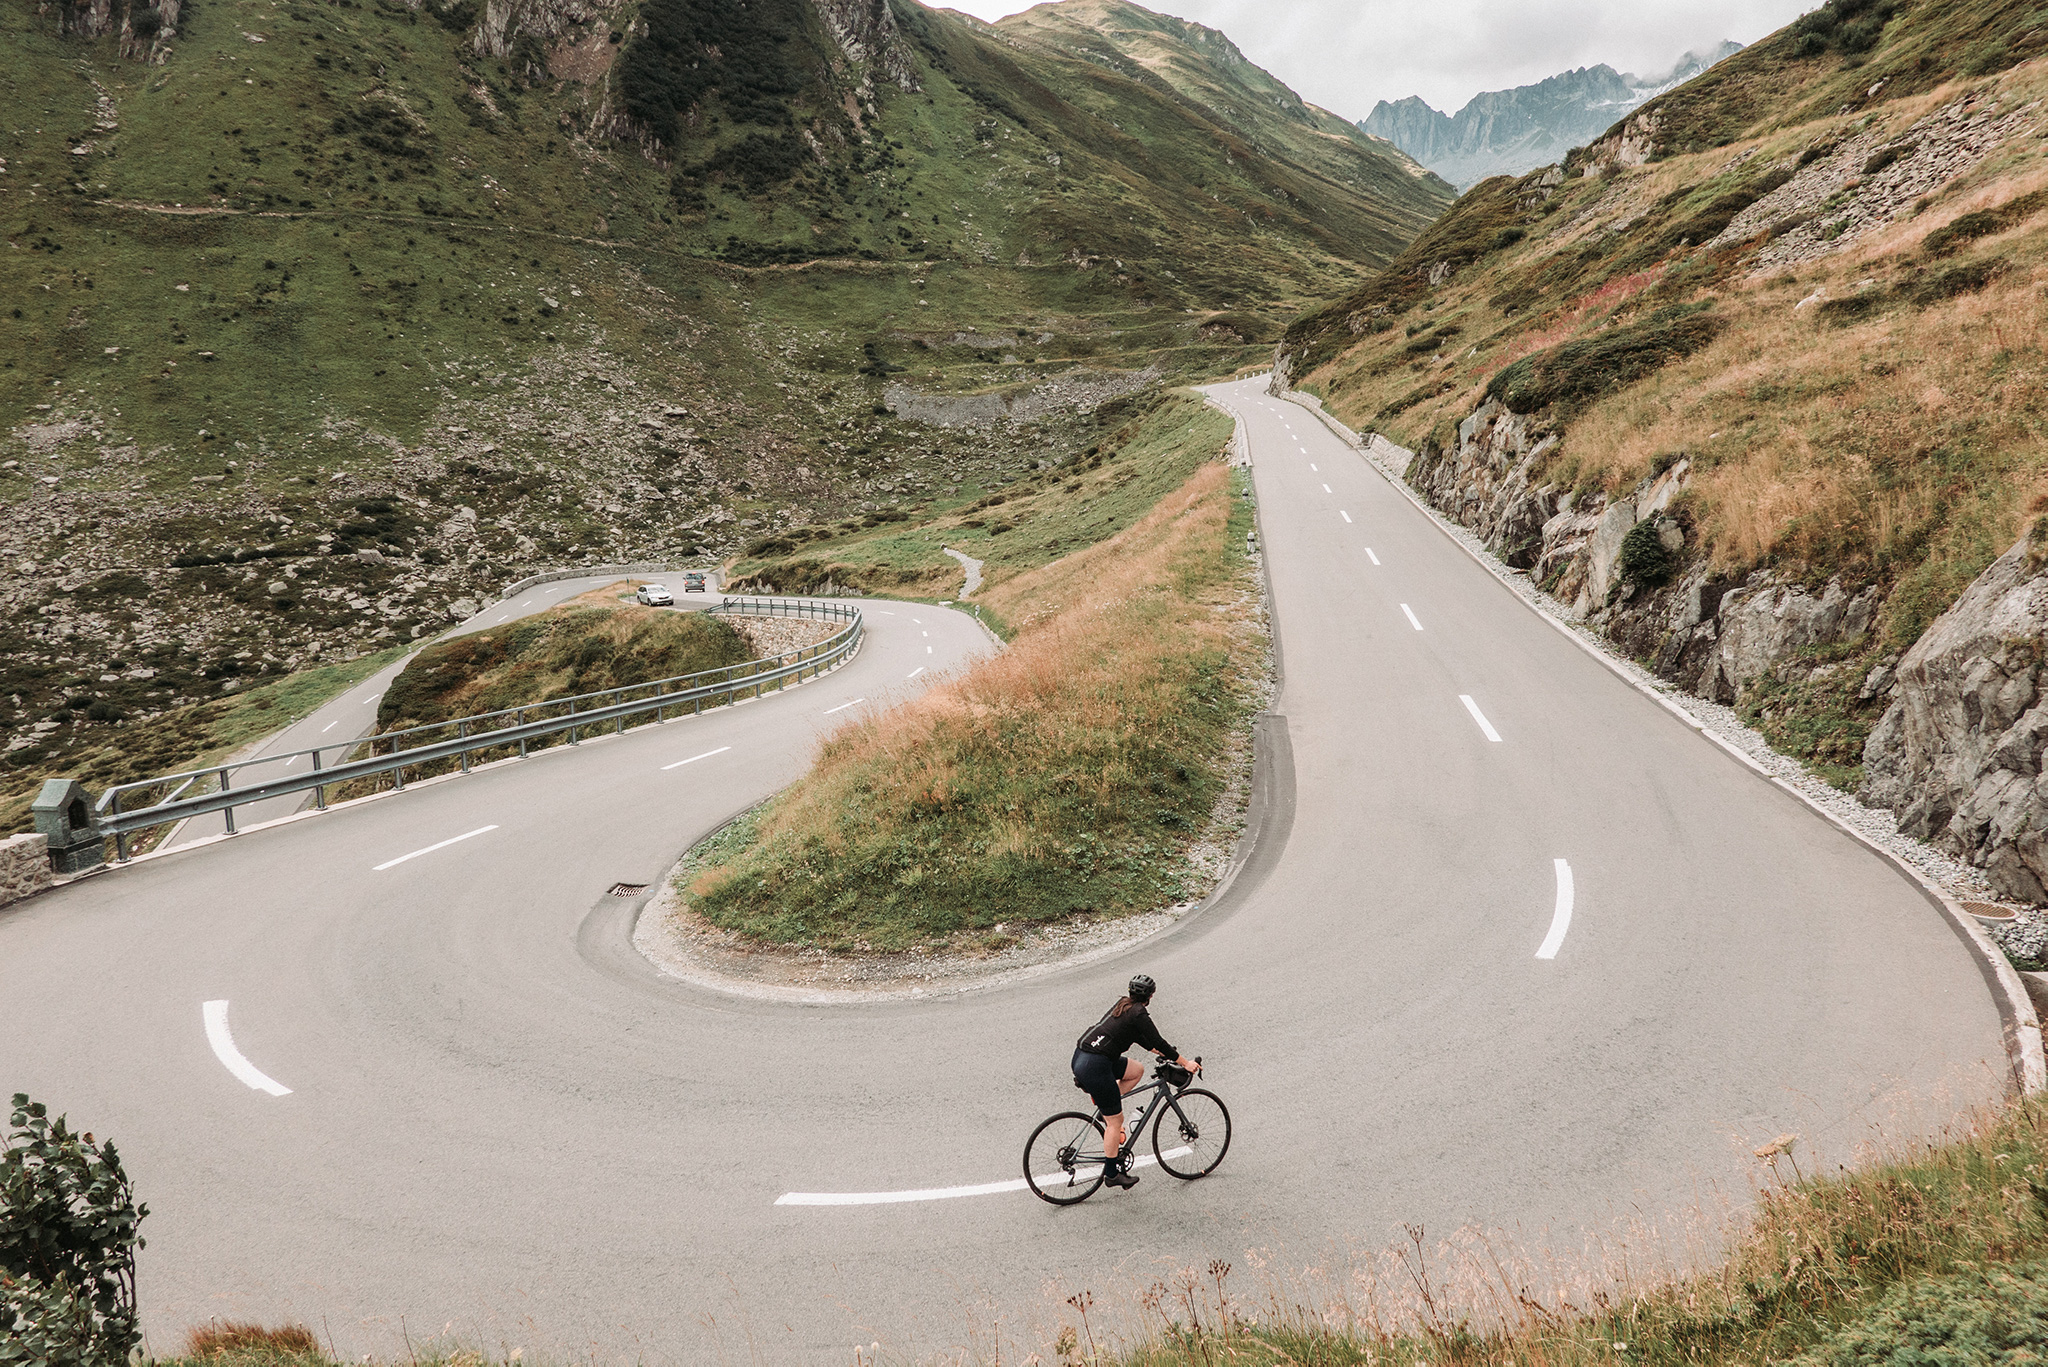 Switch back climbs on the road bike